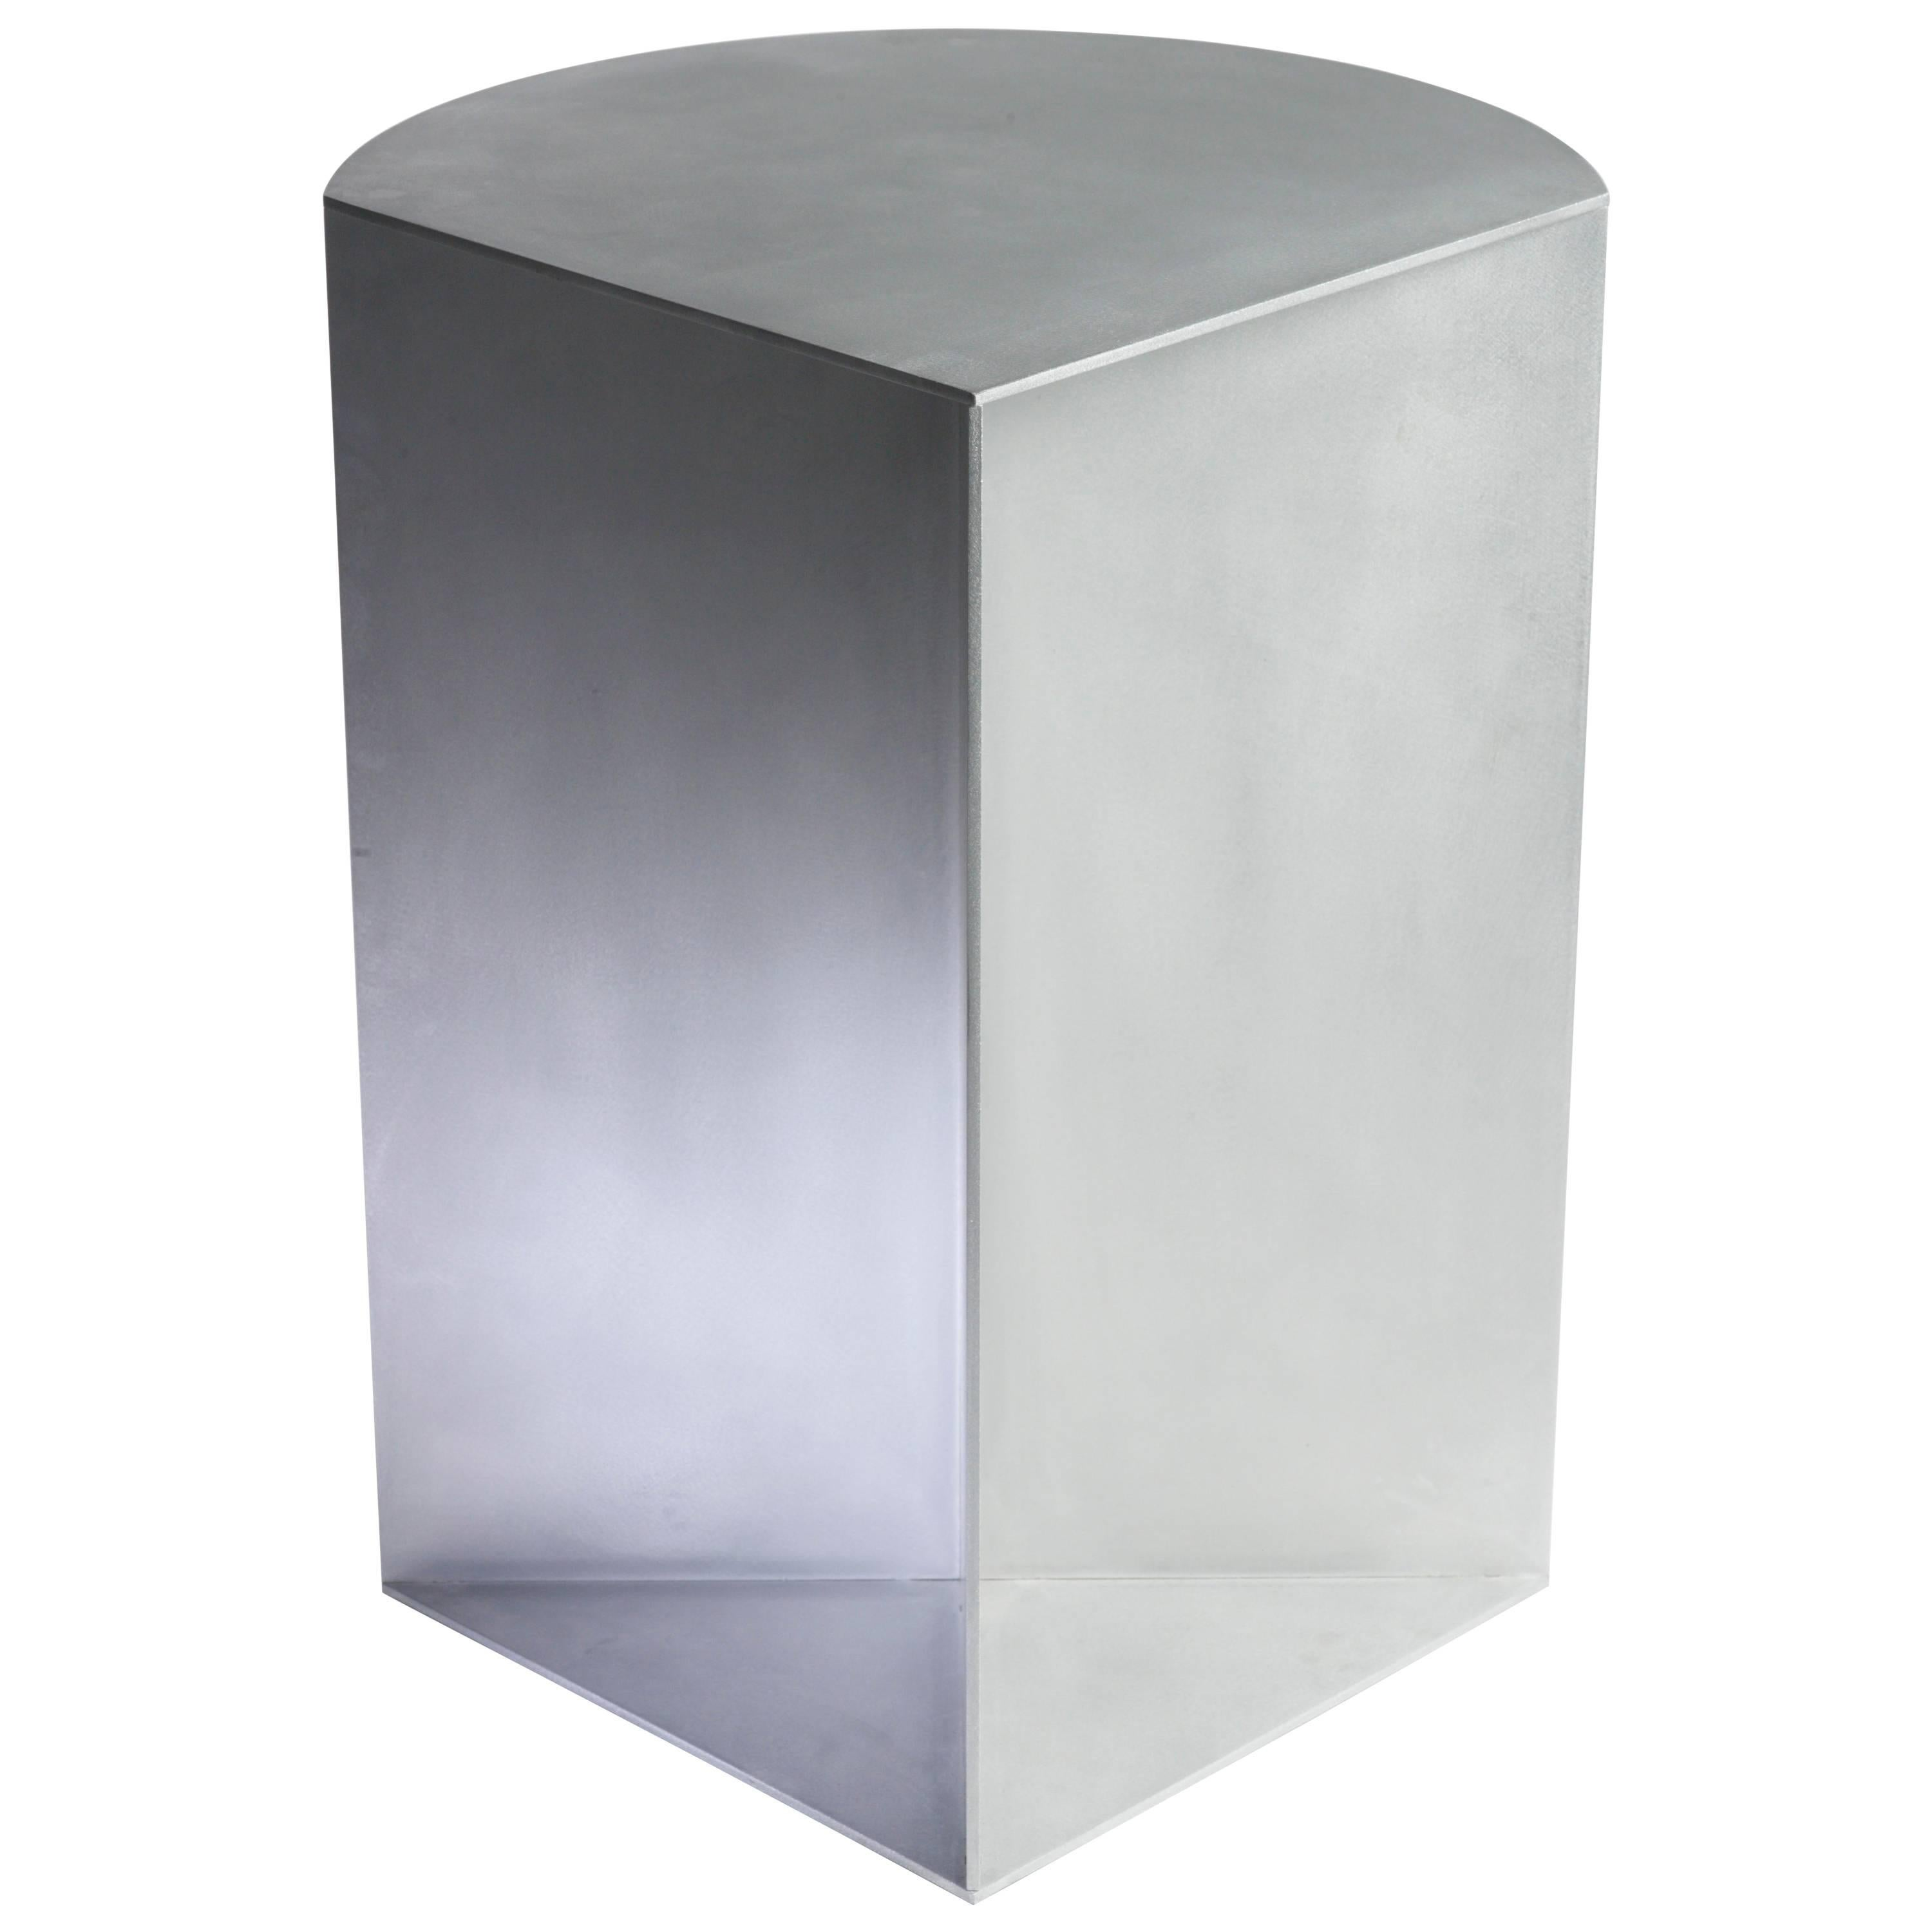 Infield Pedestal in Waxed and Polished Aluminum Plate by Jonathan Nesci